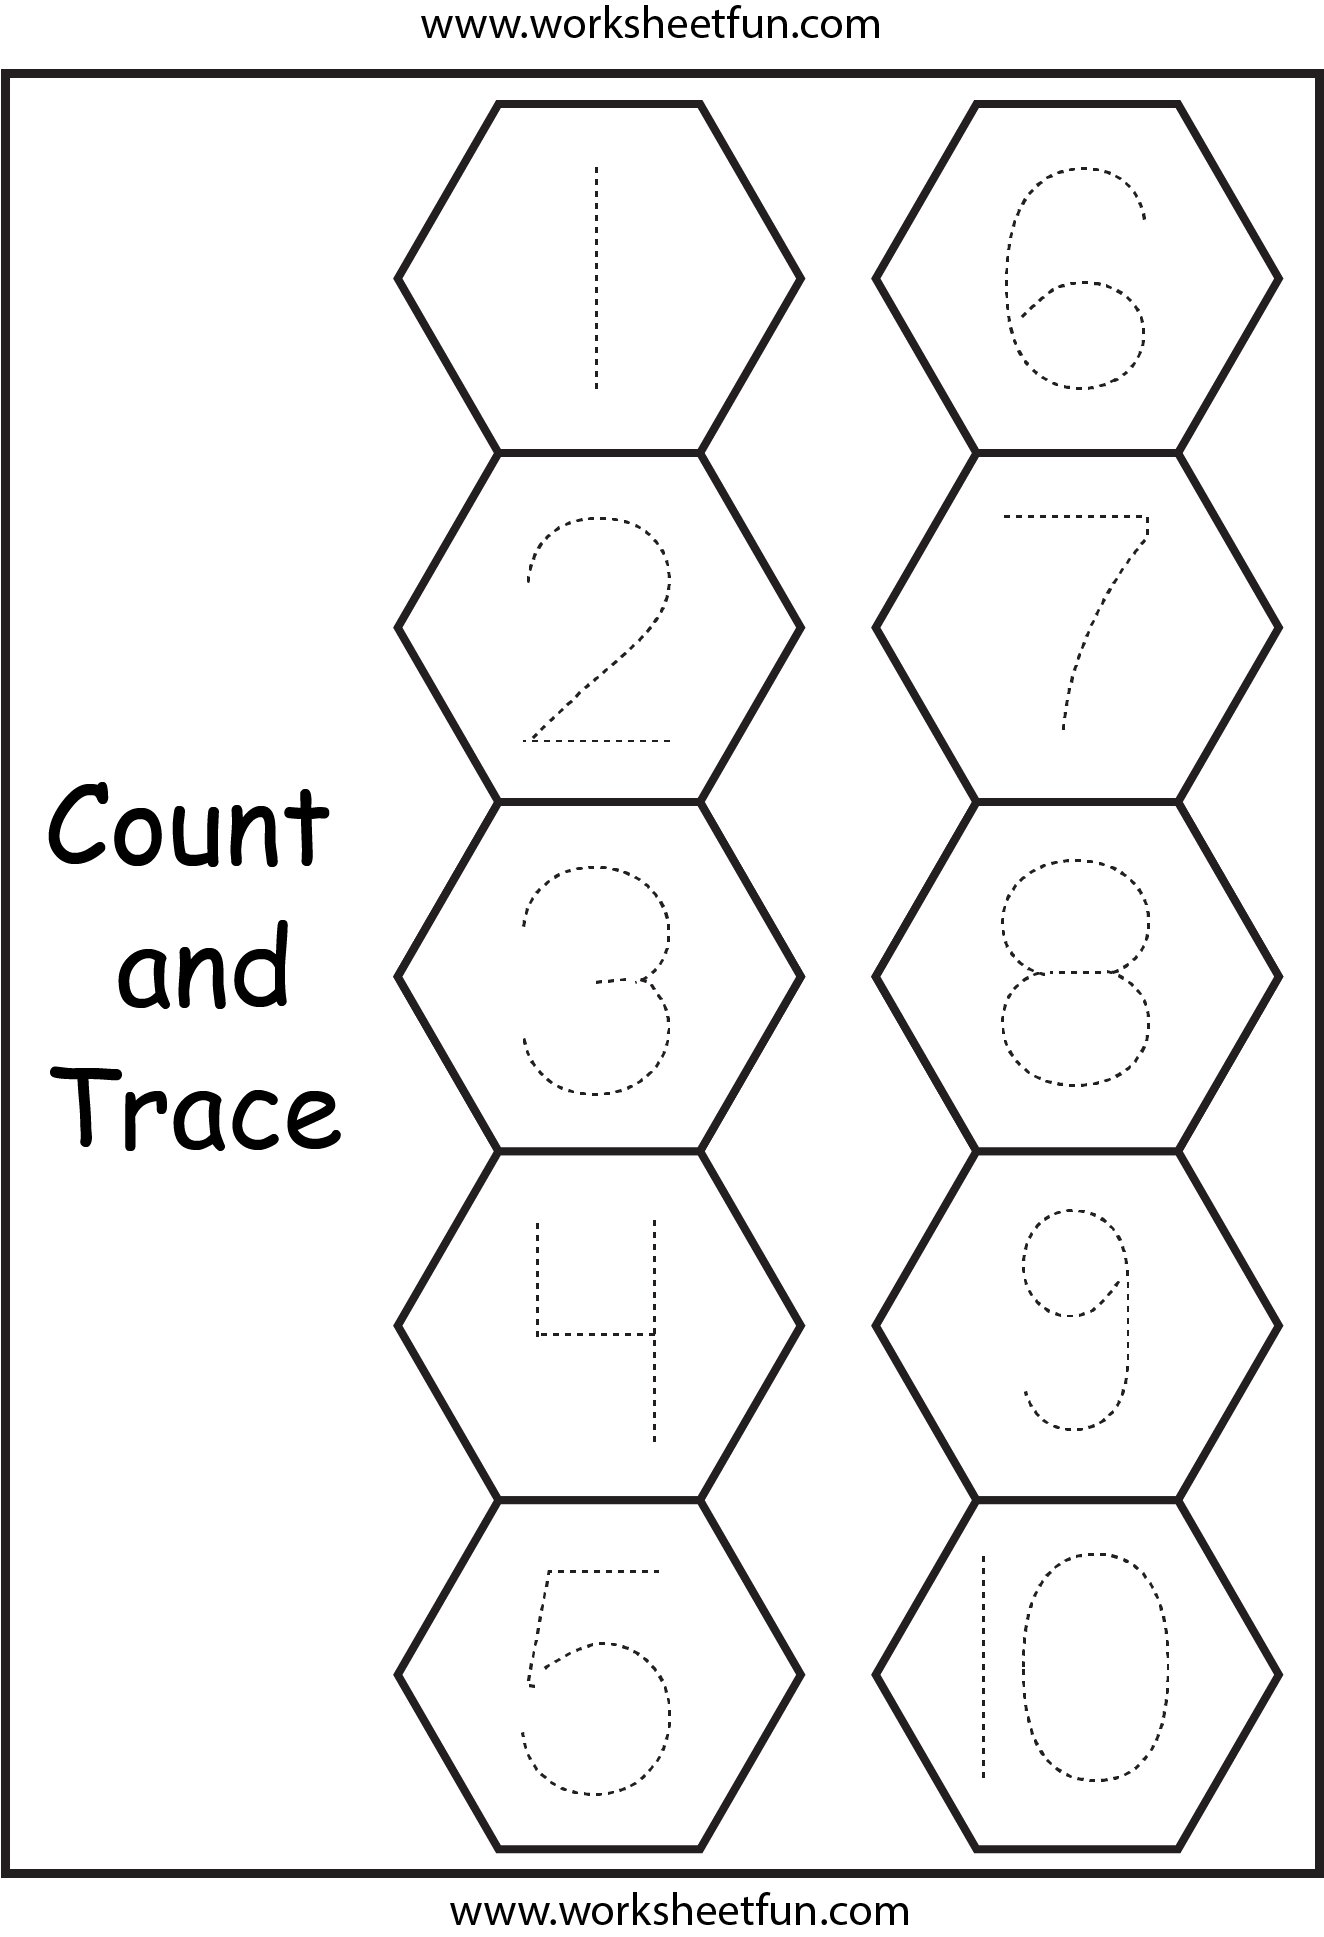 number tracing 1-10 | ejercicios | Pinterest | Number tracing ...